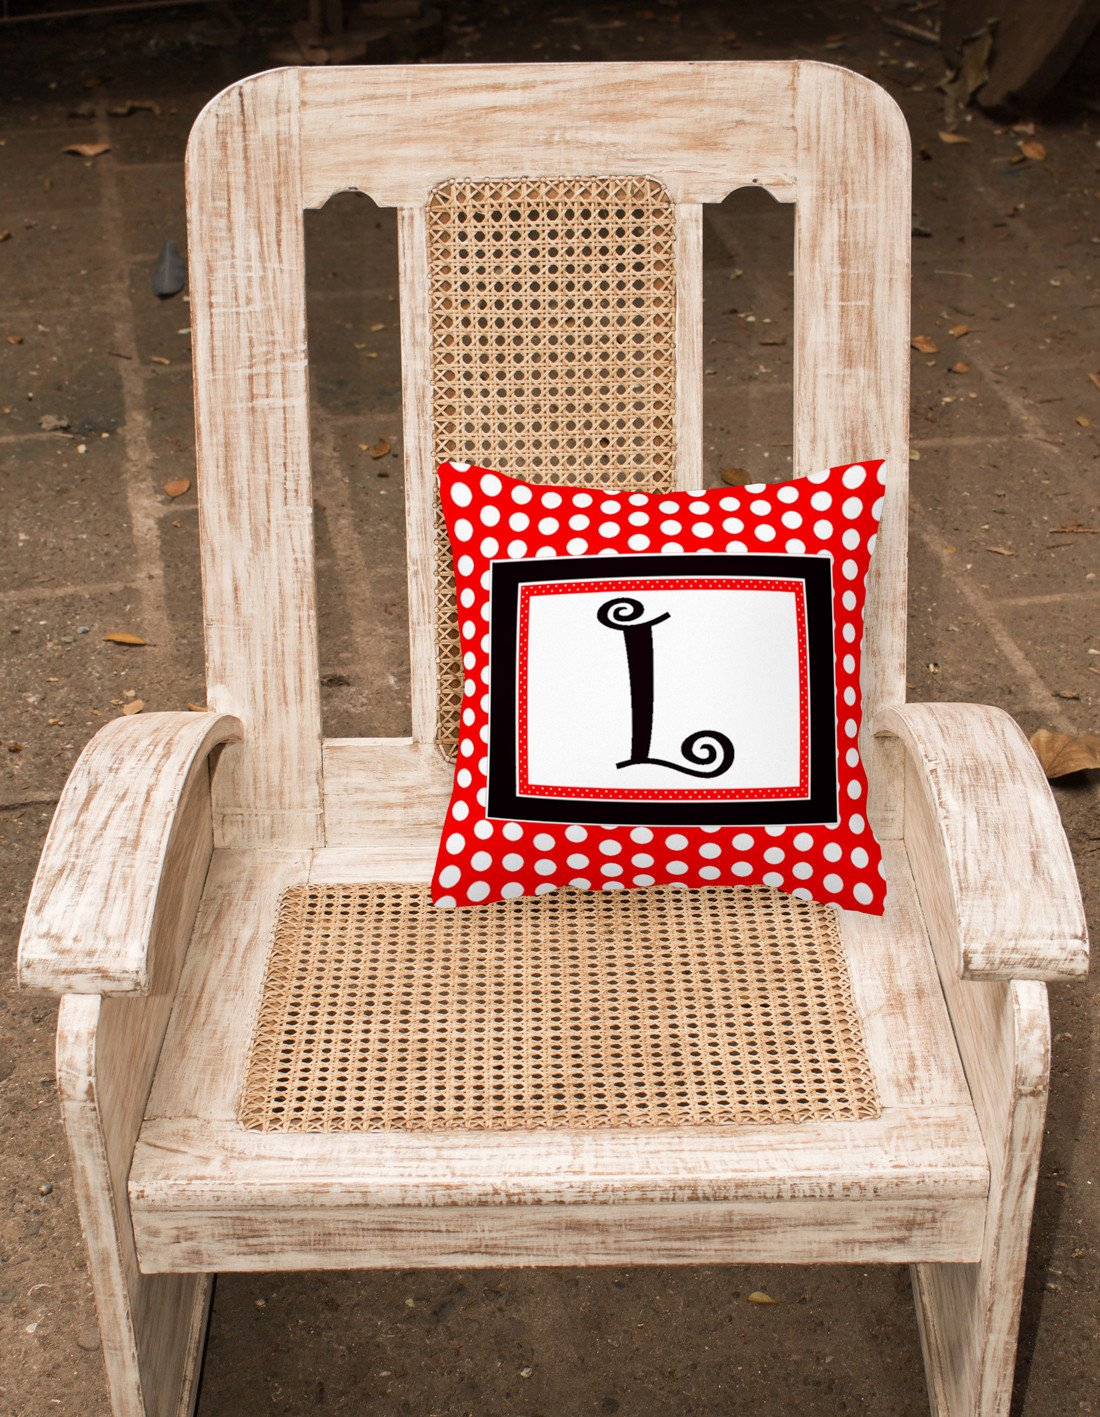 Letter L Initial Monogram Red Black Polka Dots Decorative Canvas Fabric Pillow by Caroline's Treasures